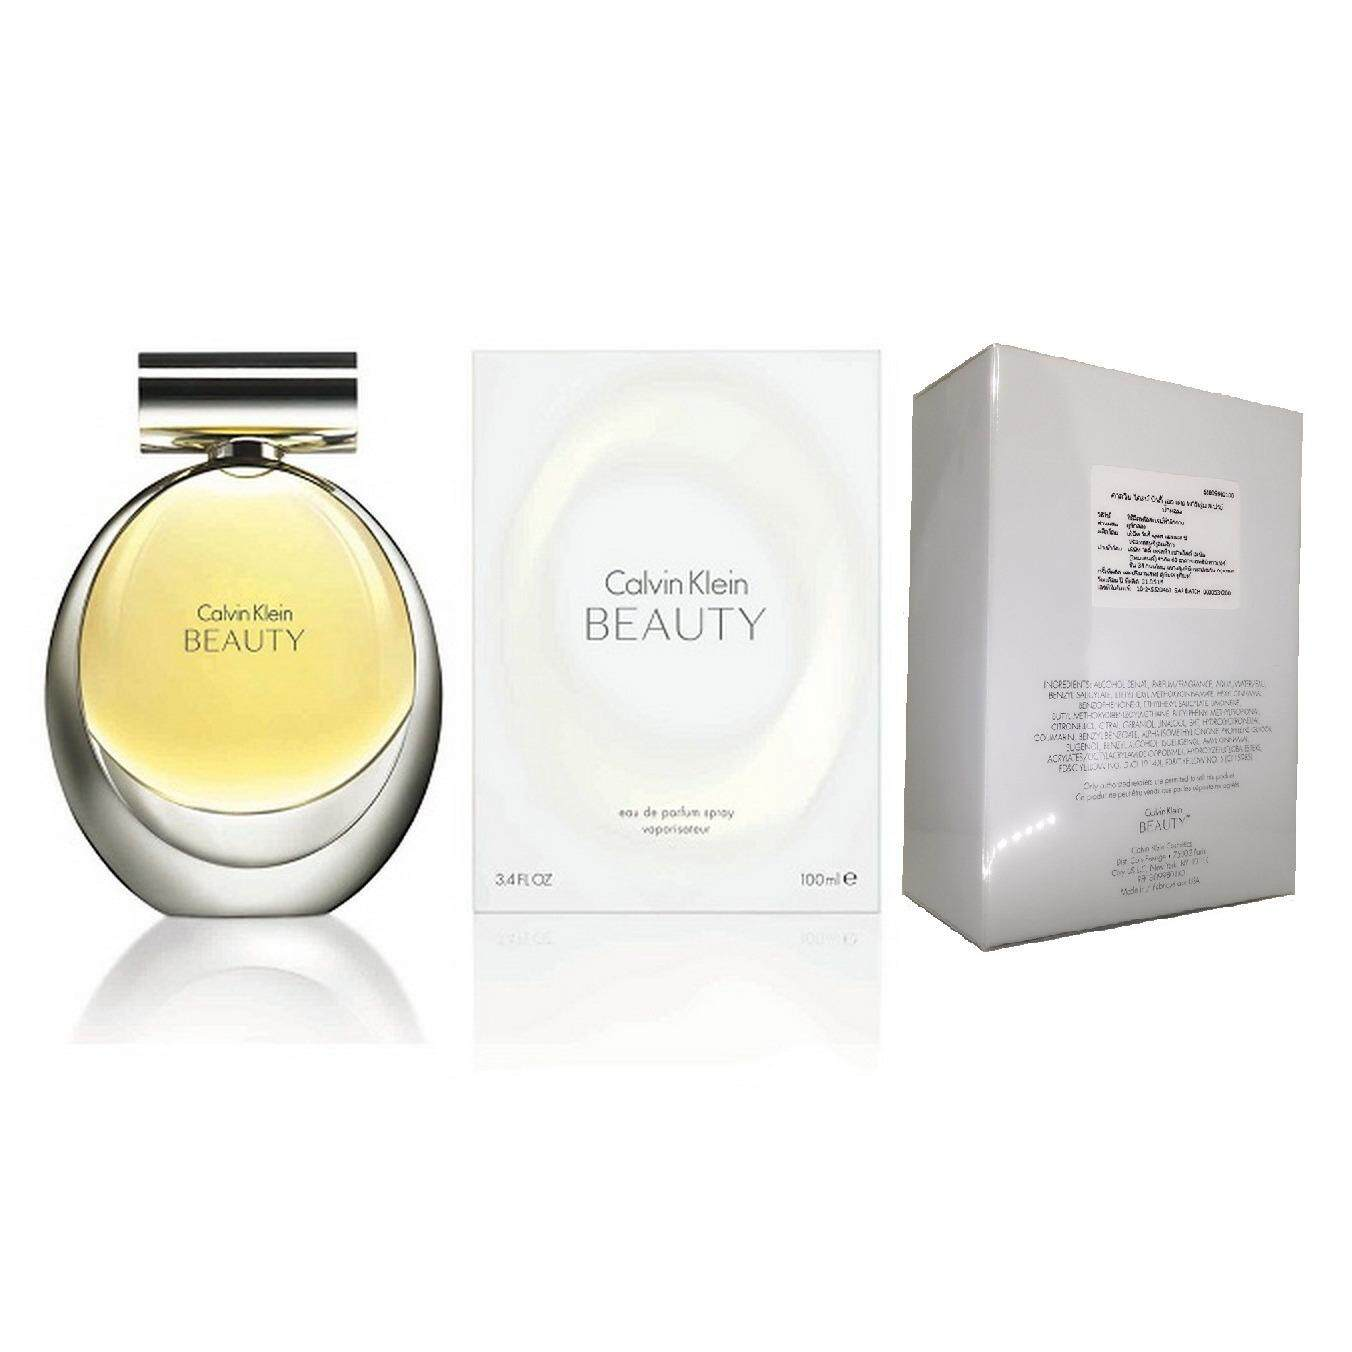 Calvin Klein Ck Beauty Edp 100Ml นนทบุรี